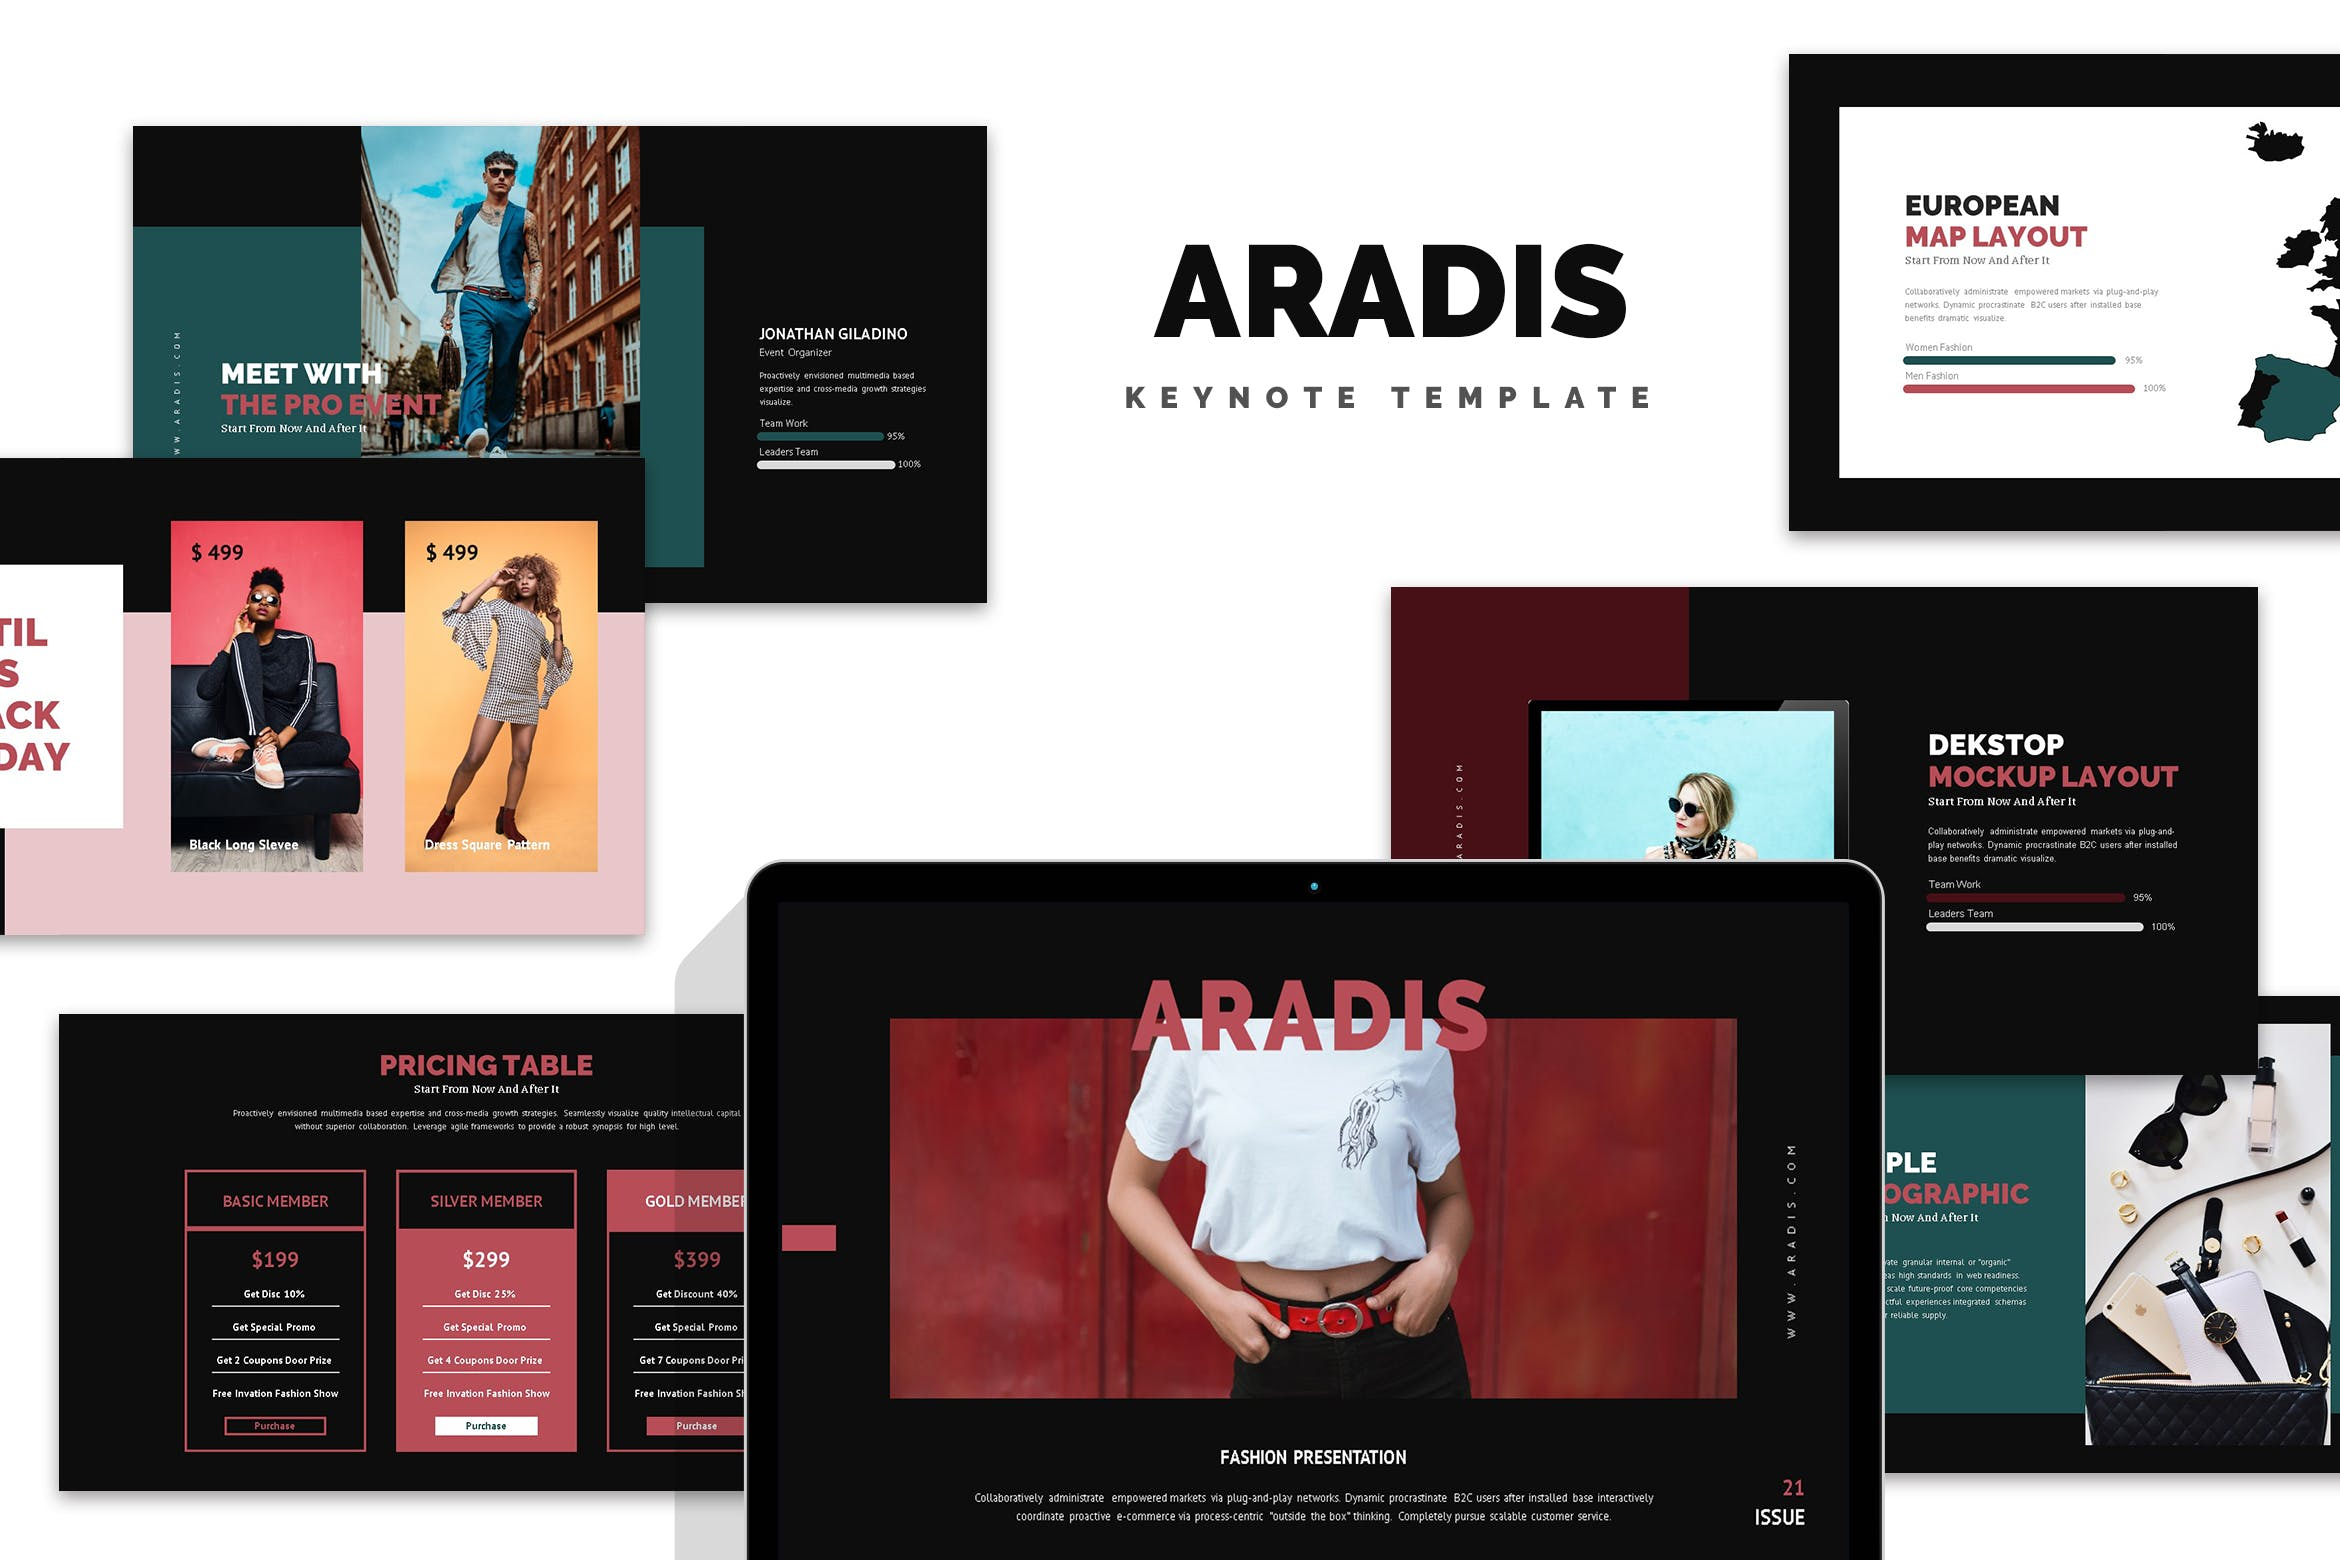 欧美时尚现代服装行业Keynote模版 Aradis : Black Friday Keynote Template